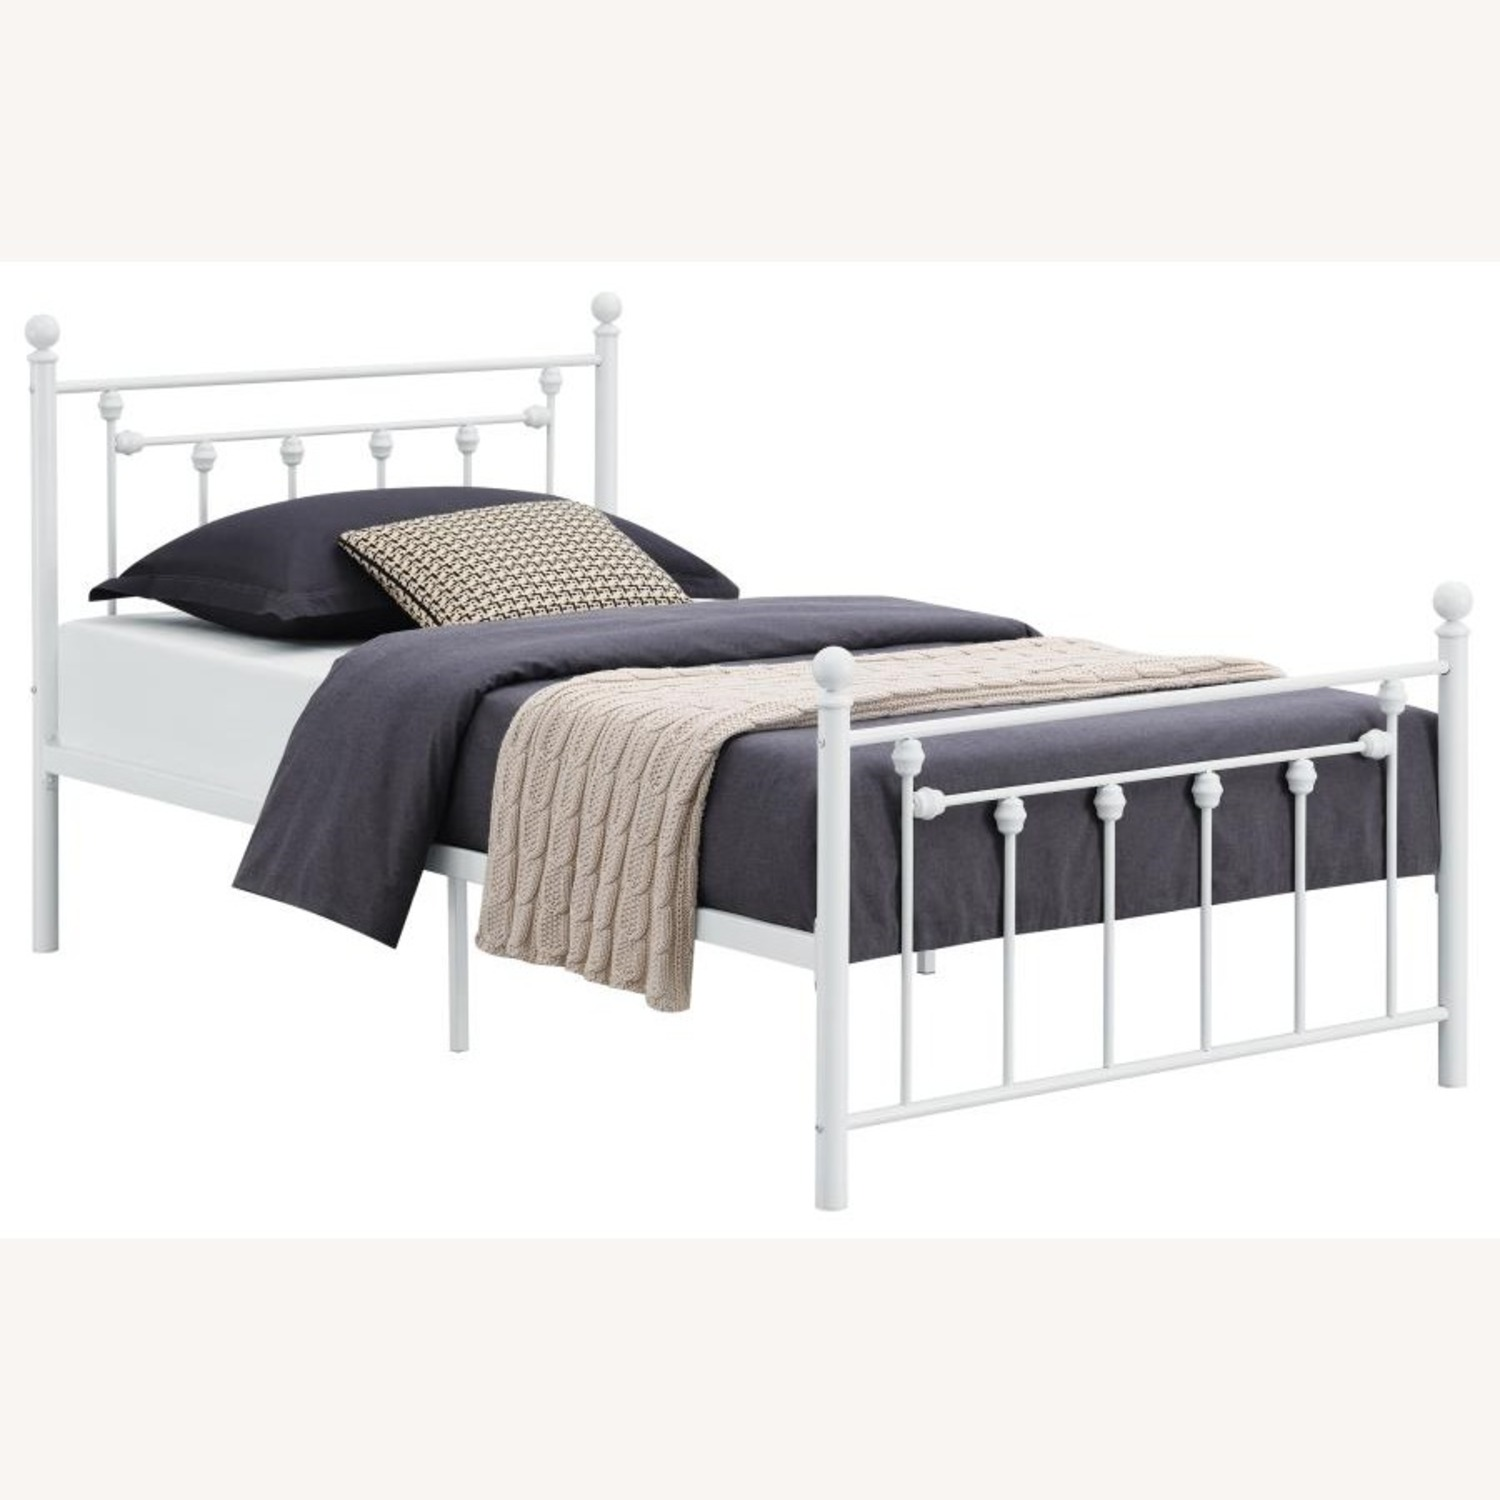 Full Bed In Matte White Powder Coated Finish - image-0